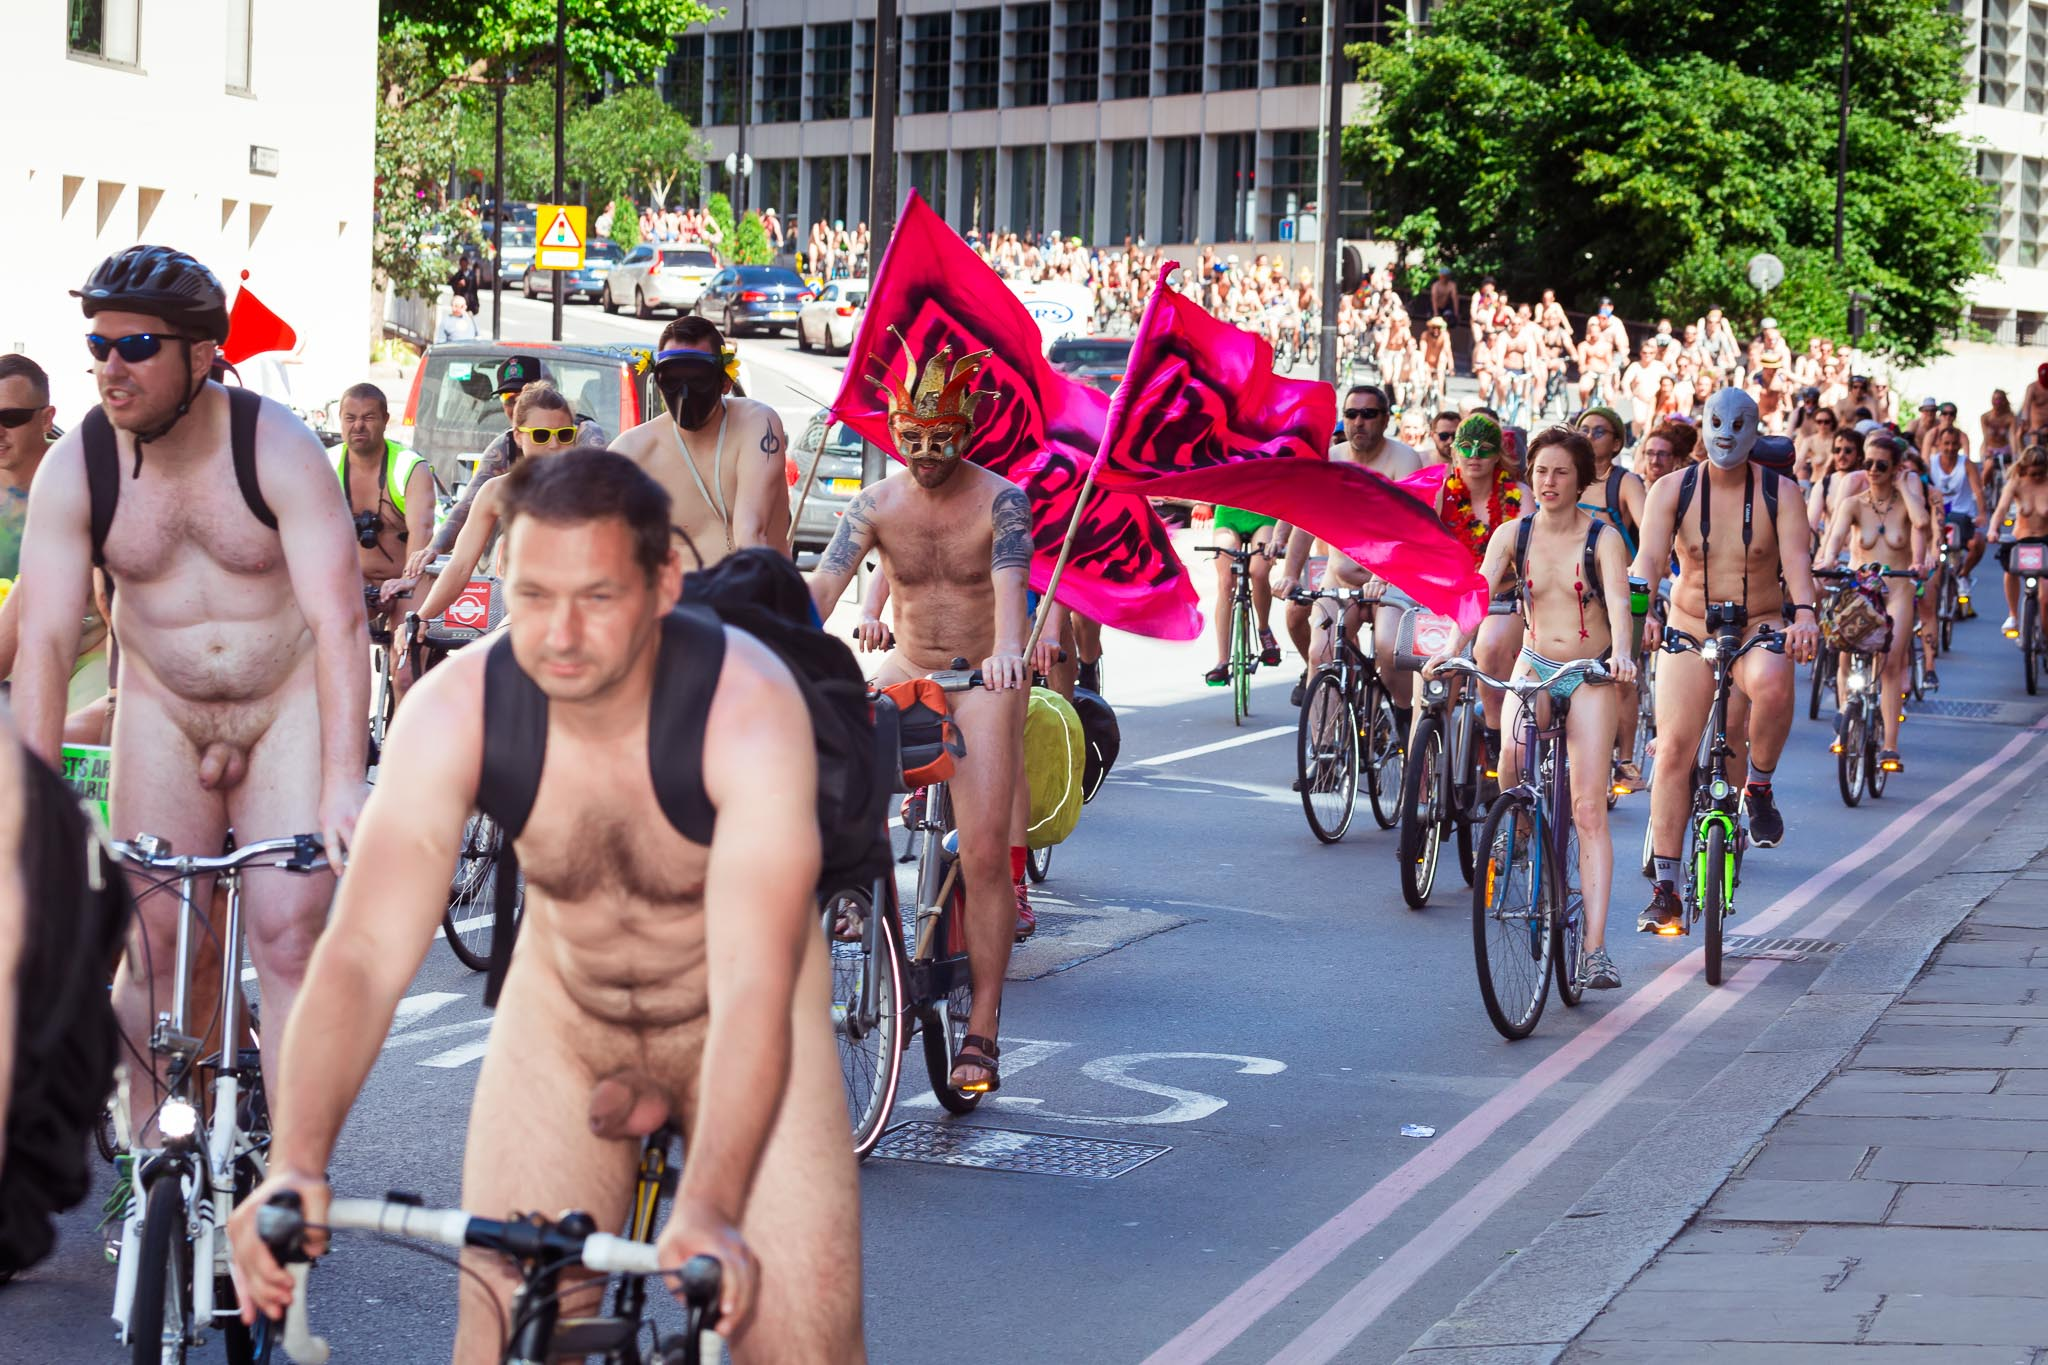 _MG_1629 Naked Bike Ride London 190617 by Alexander Ivanov Photography for web